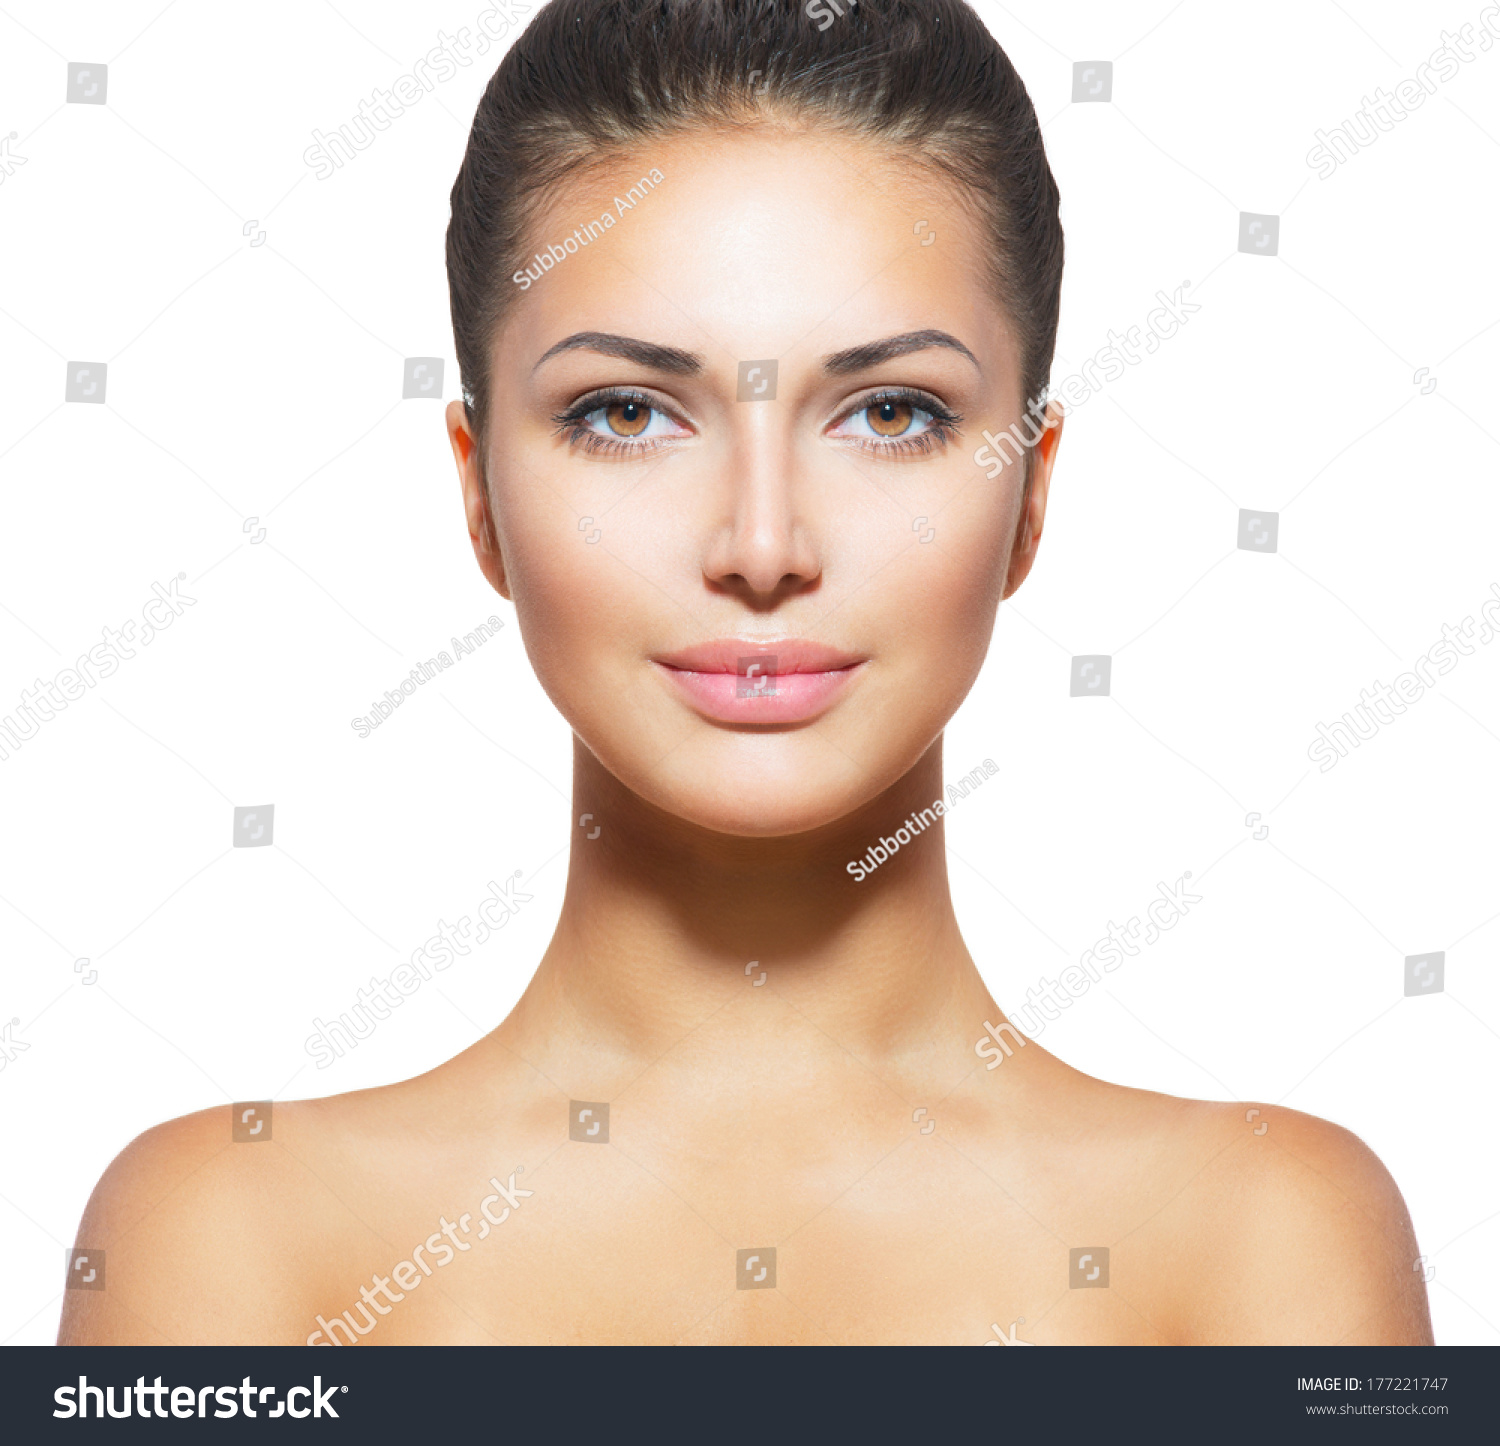 Beautiful face young woman clean fresh stock photo for Spa closest to me